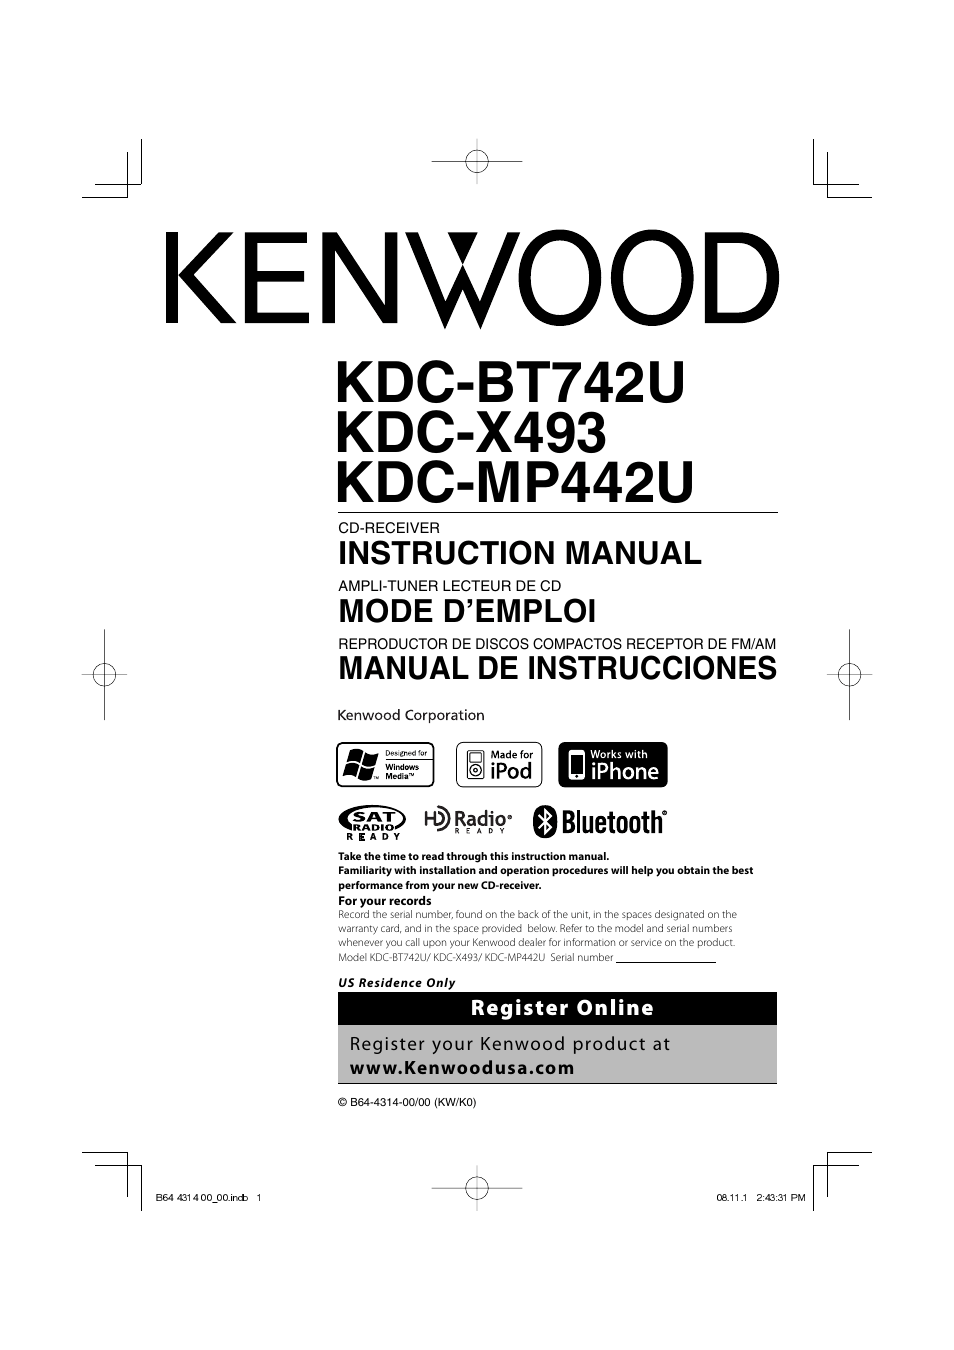 Kenwood Kdc Mp2032 Wiring Harness 33 Diagram Images Cd Player Bt742u Page1resize6652c940 X492